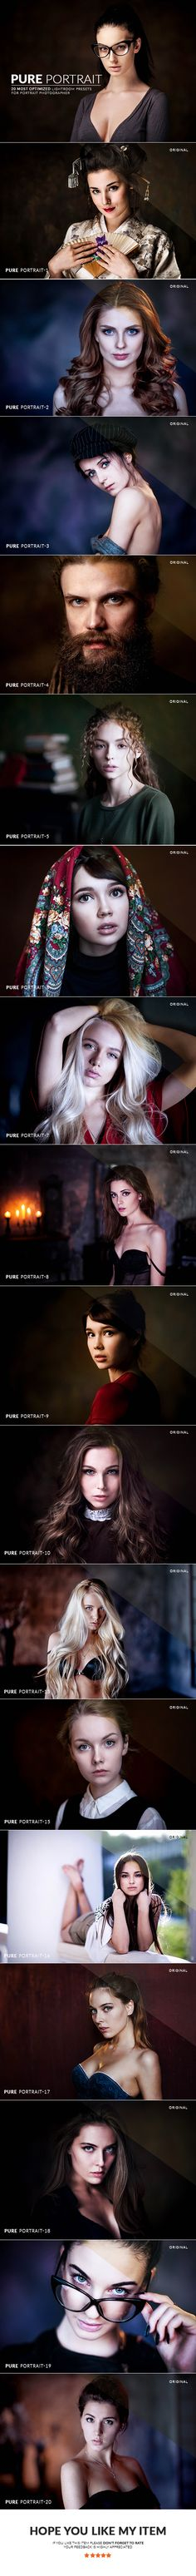 20 Pure Portrait Lightroom Presets. Download here: https://graphicriver.net/item/20-pure-portrait-lightroom-presets/17391687?ref=ksioks